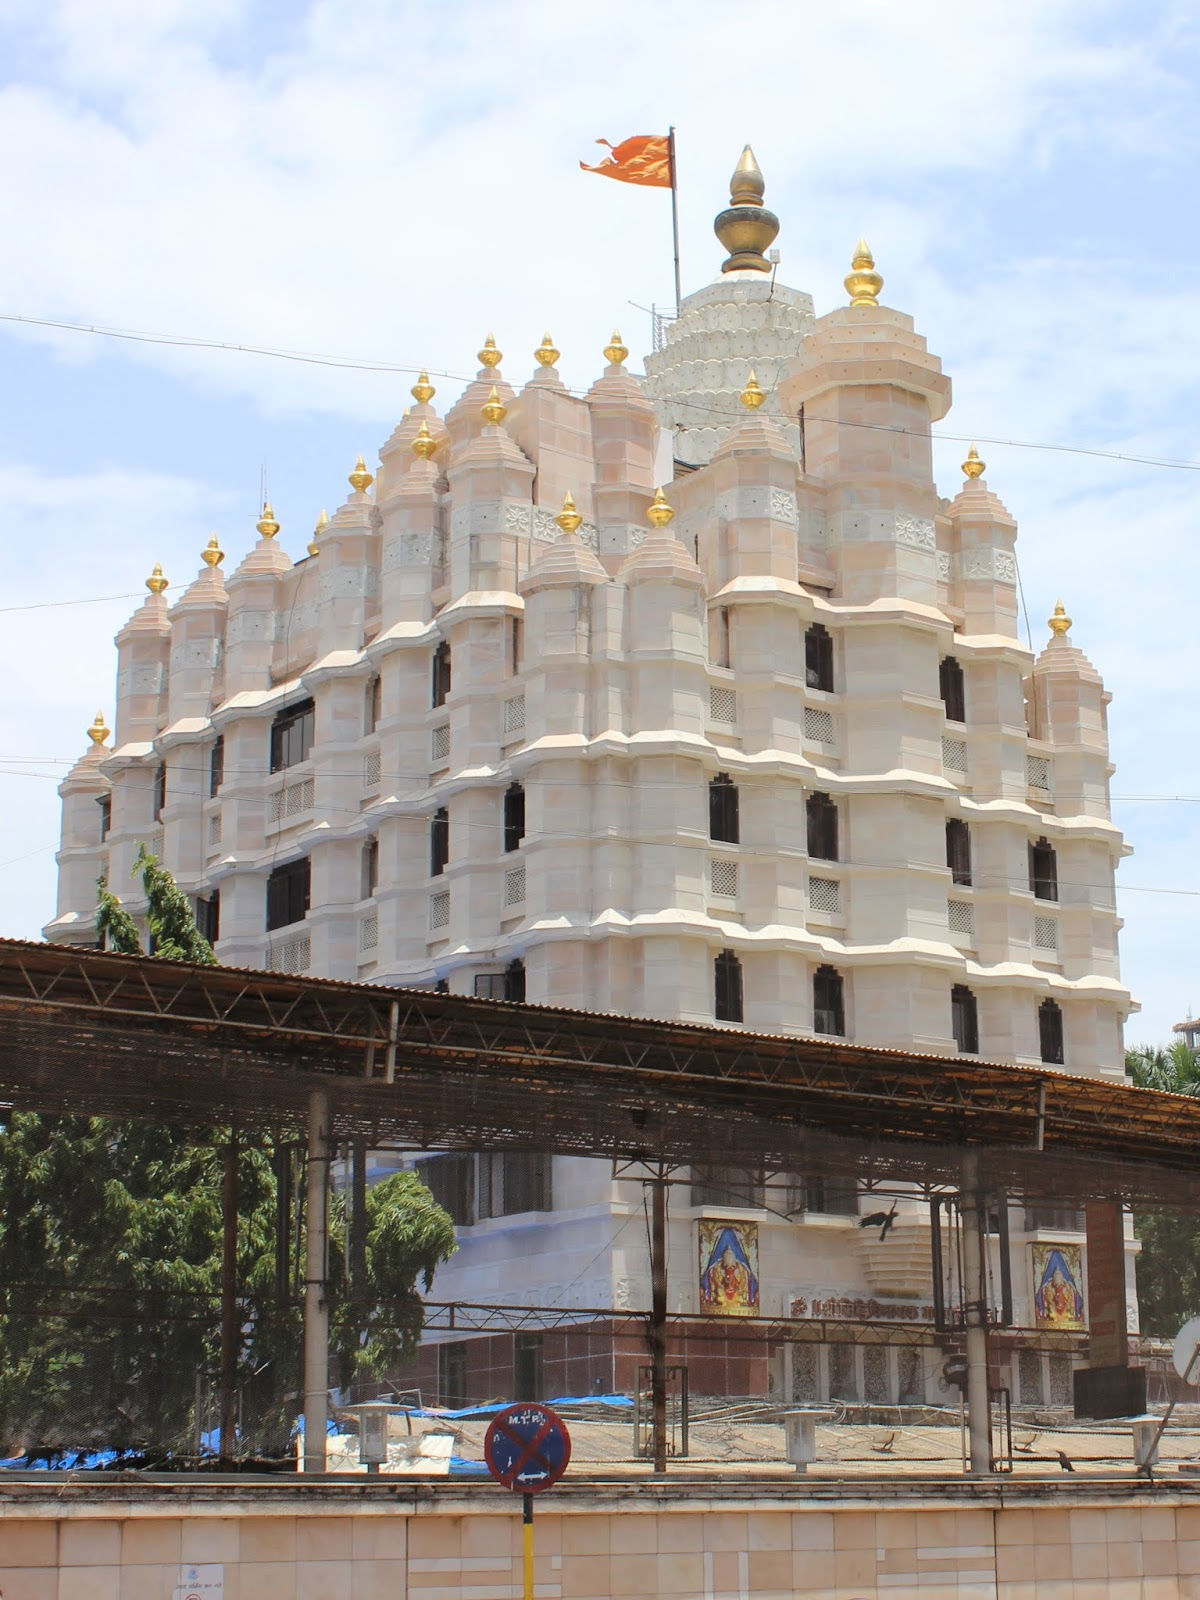 siddhivinayak temple| full details about siddhivinayak temple mumbai (2019)